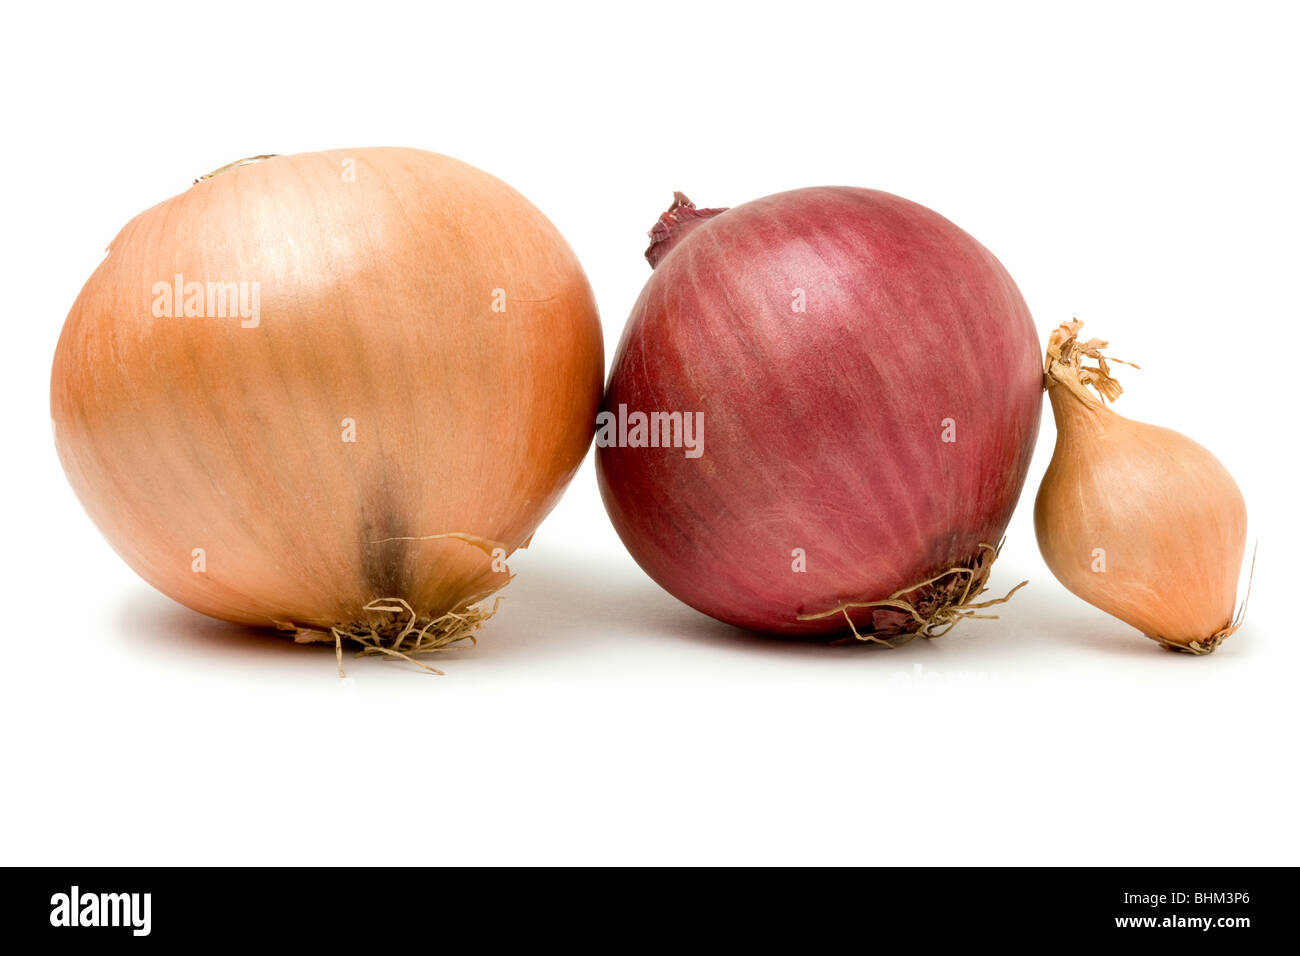 A selection of three onions from the Onion Family isolated against white background. - Stock Image